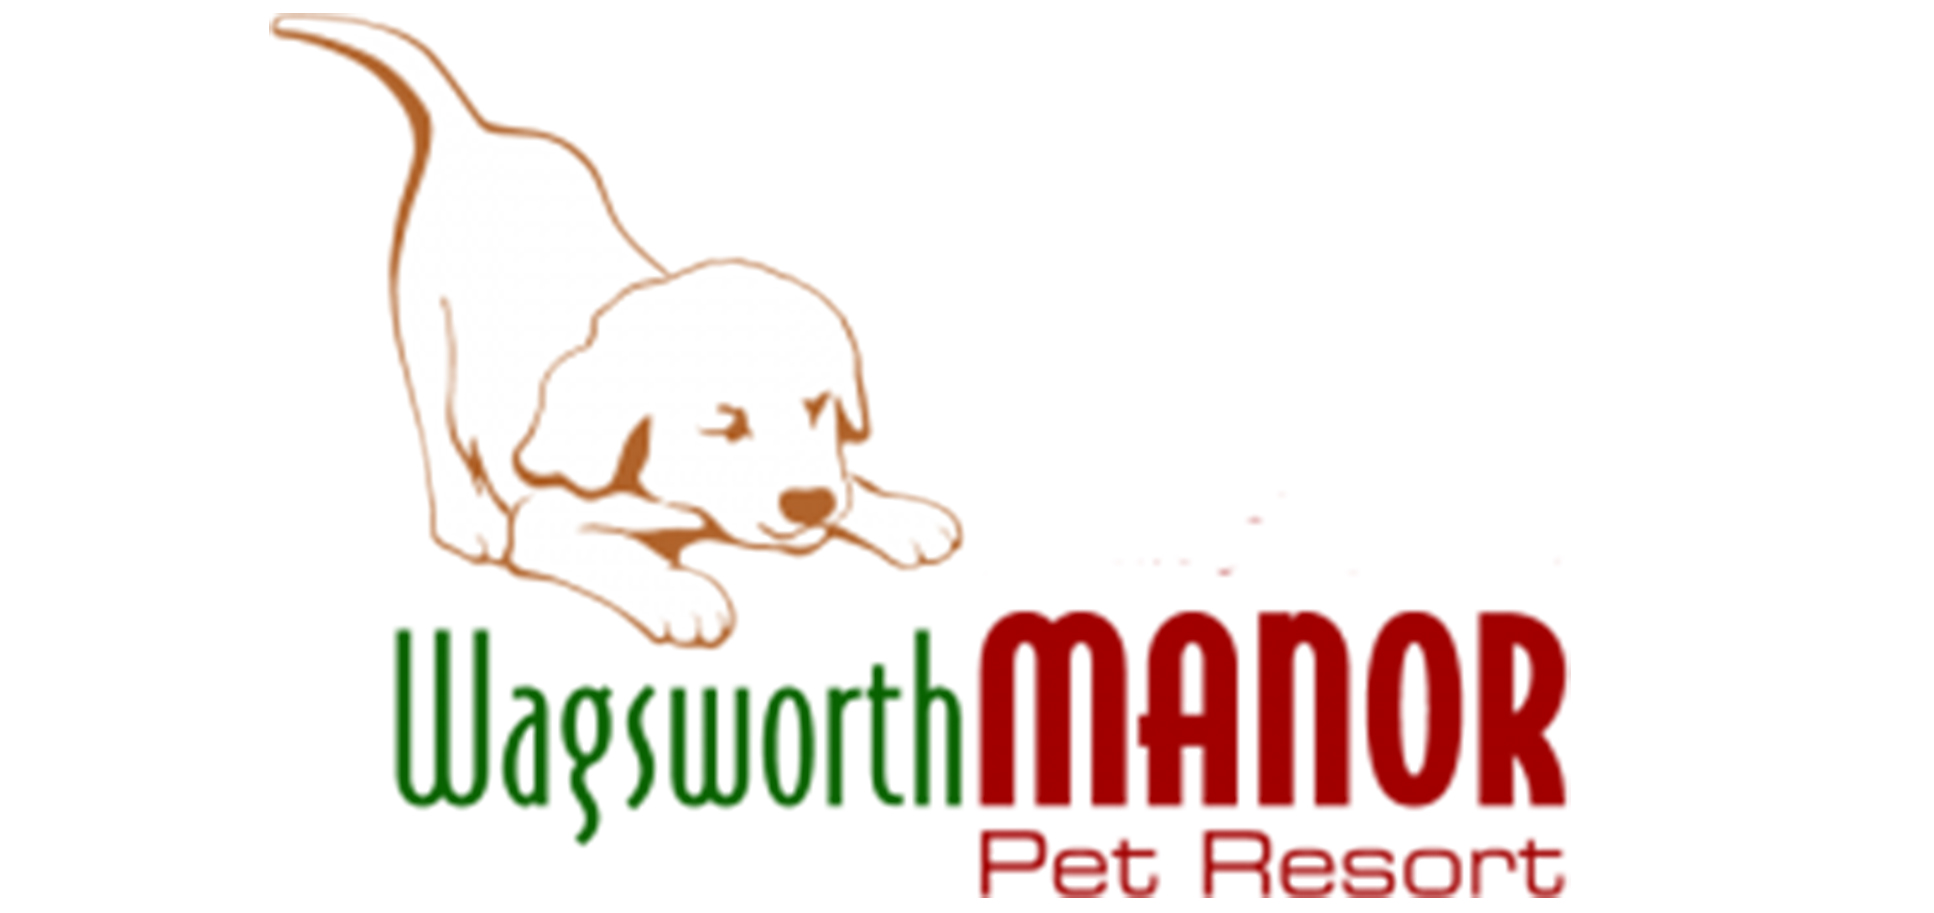 Wagsworth Manor Pet Resort